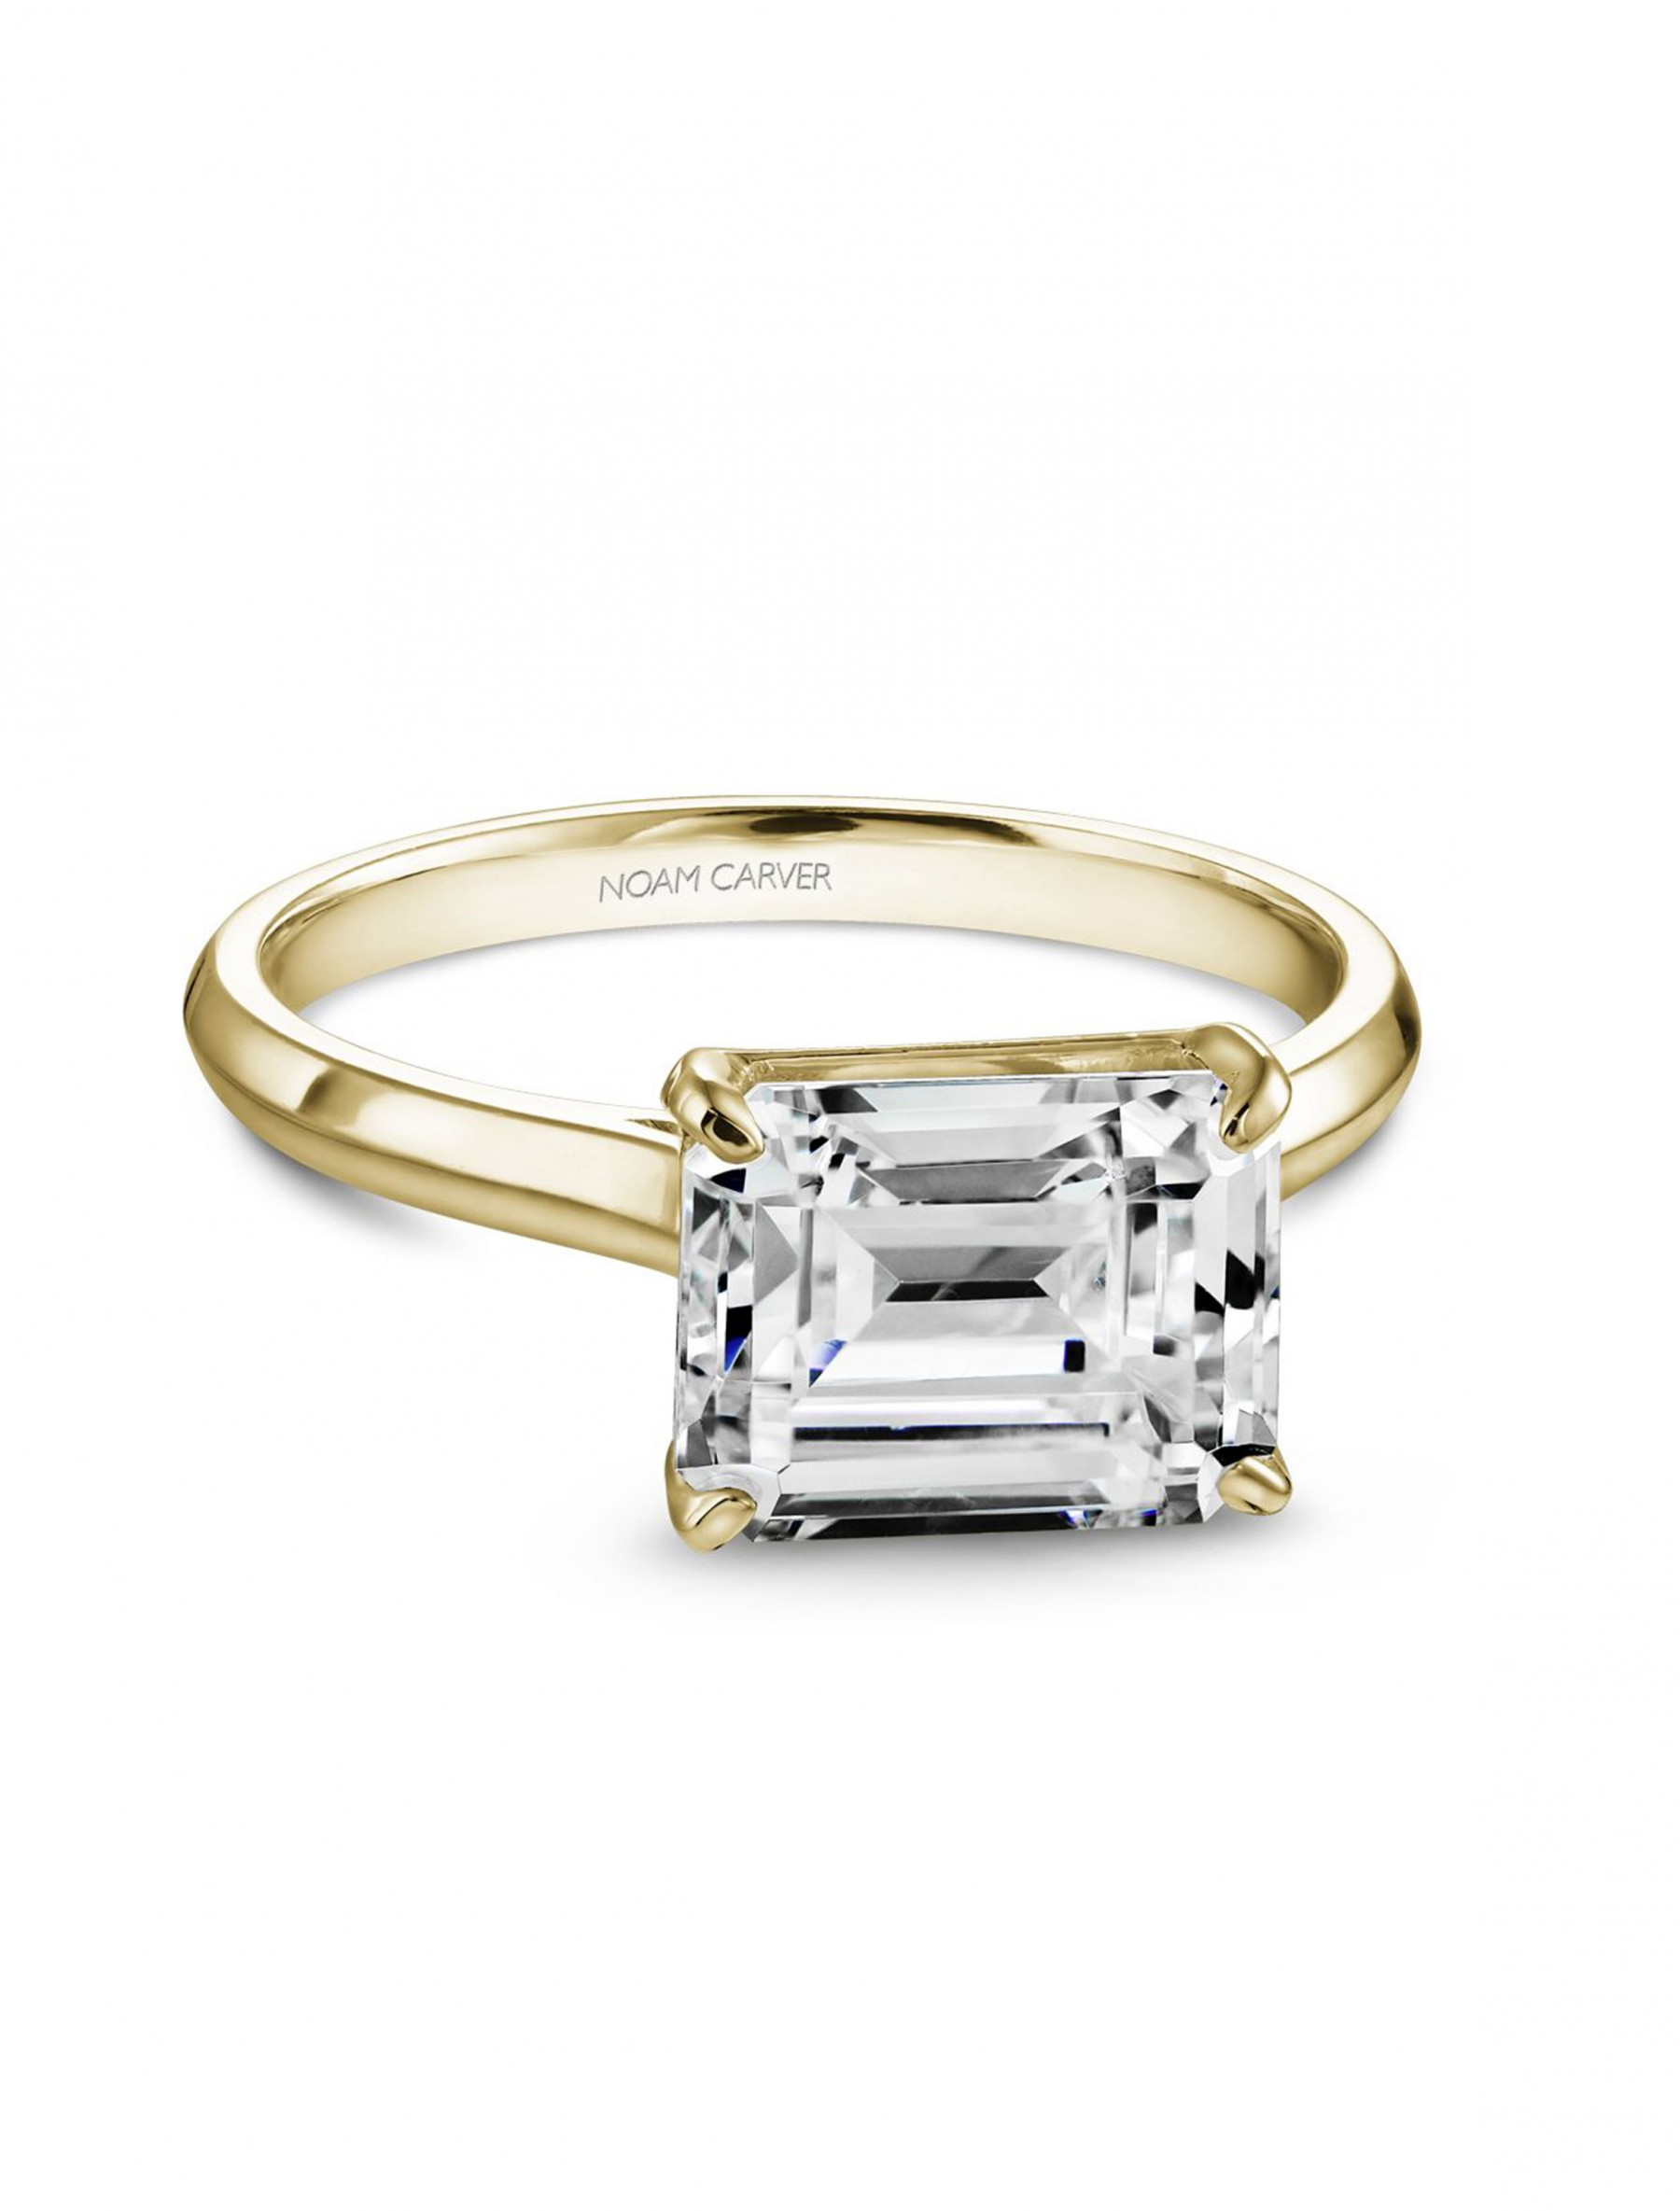 Noam Carver Emerald Solitaire East West Engagement Ring Setting in 18K Gold main view